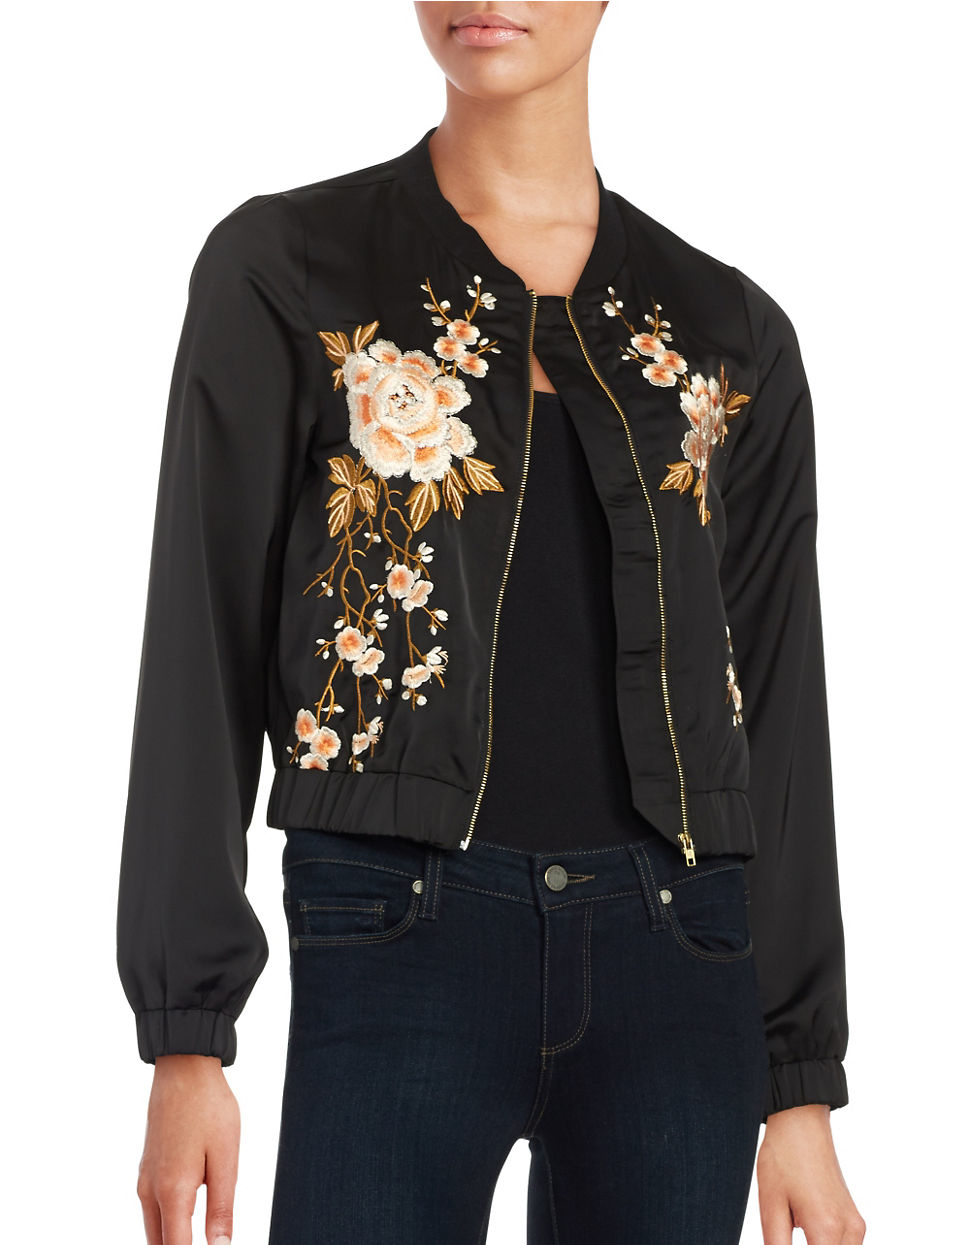 Lord taylor floral embroidered bomber jacket in black lyst